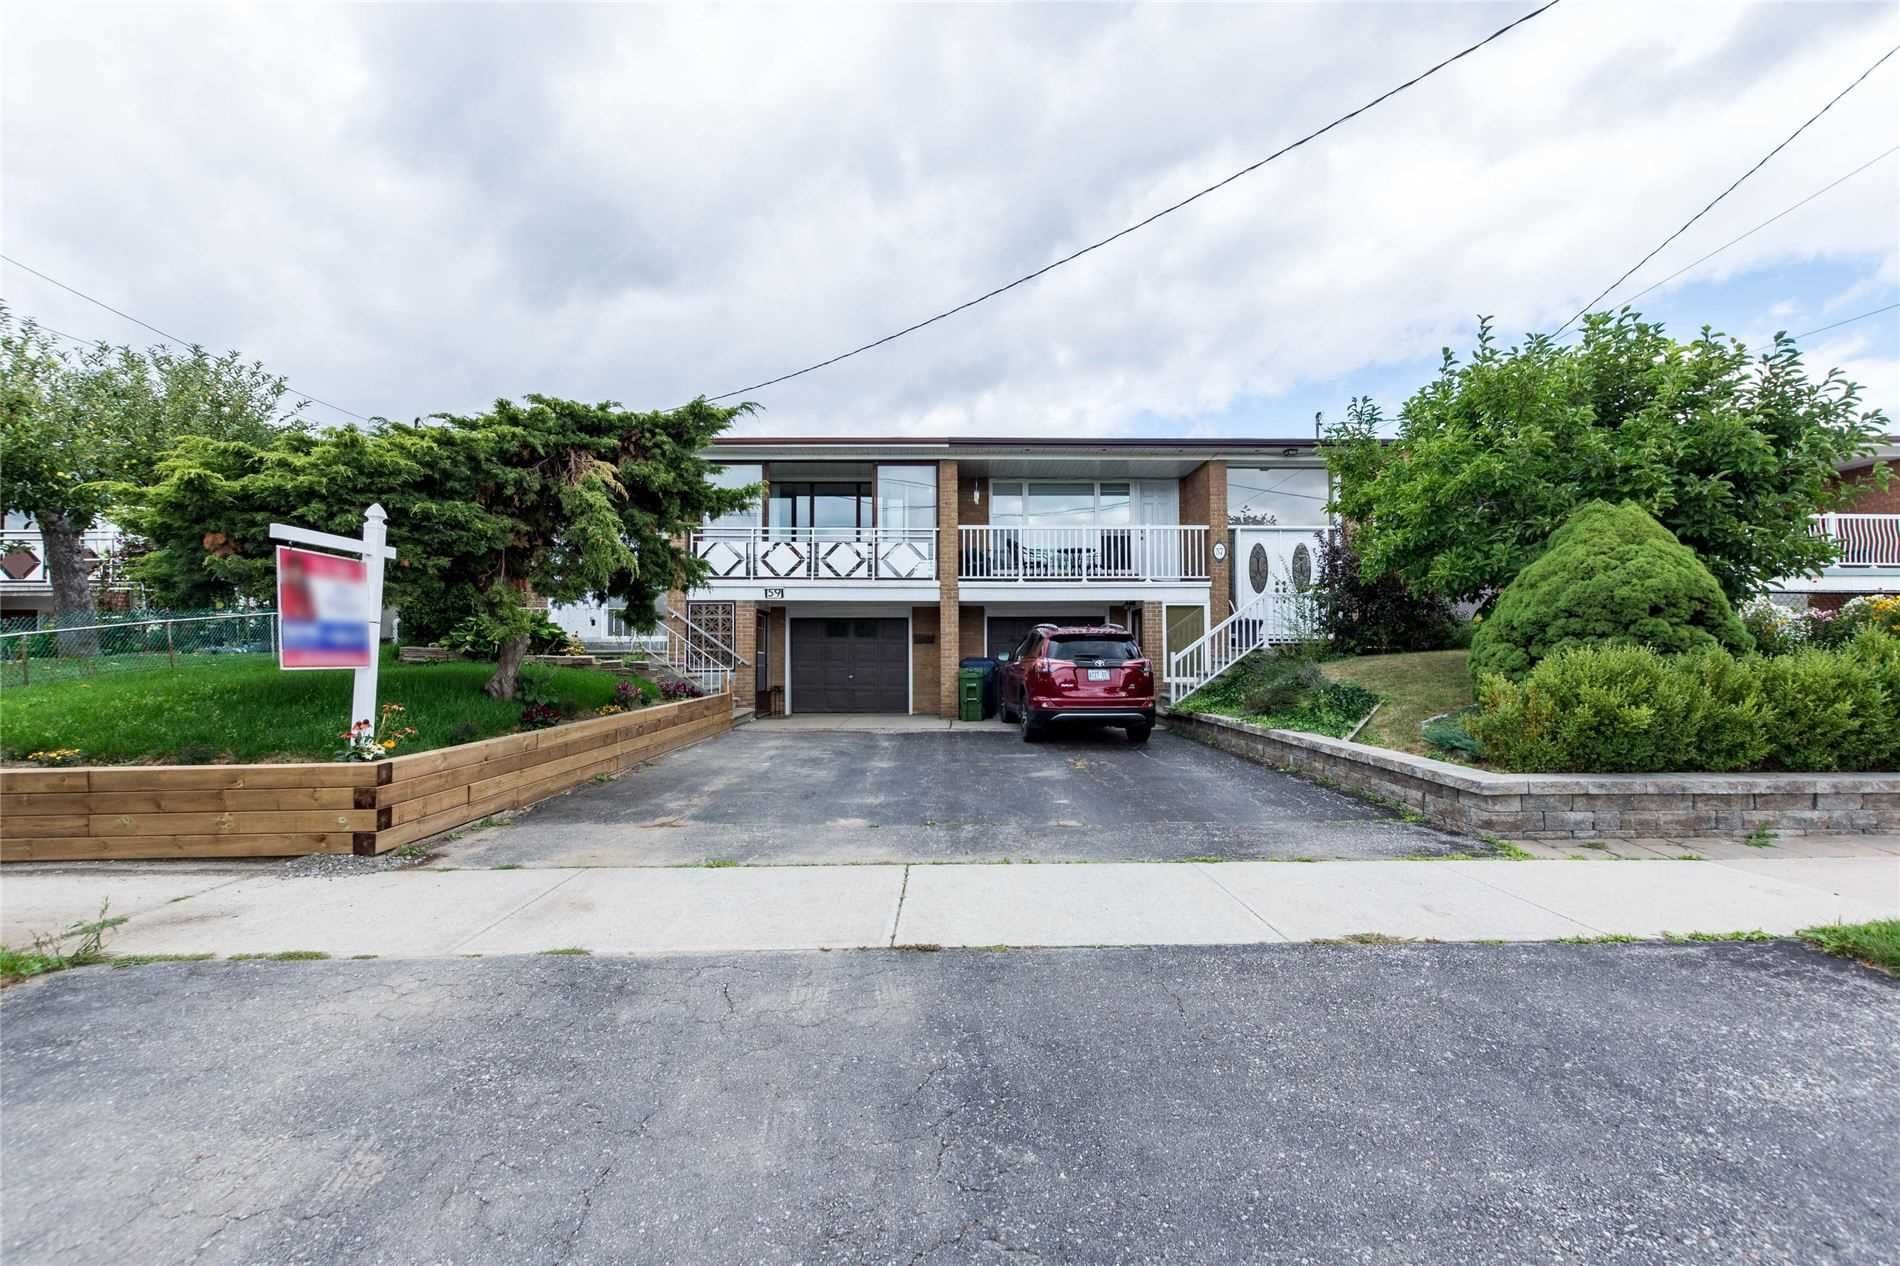 59 Sorlyn Ave' Toronto' Ontario M6L1H7 <br>MLS® Number: W4570038<br>For Sale: $699'000<br>Bedrooms: 3